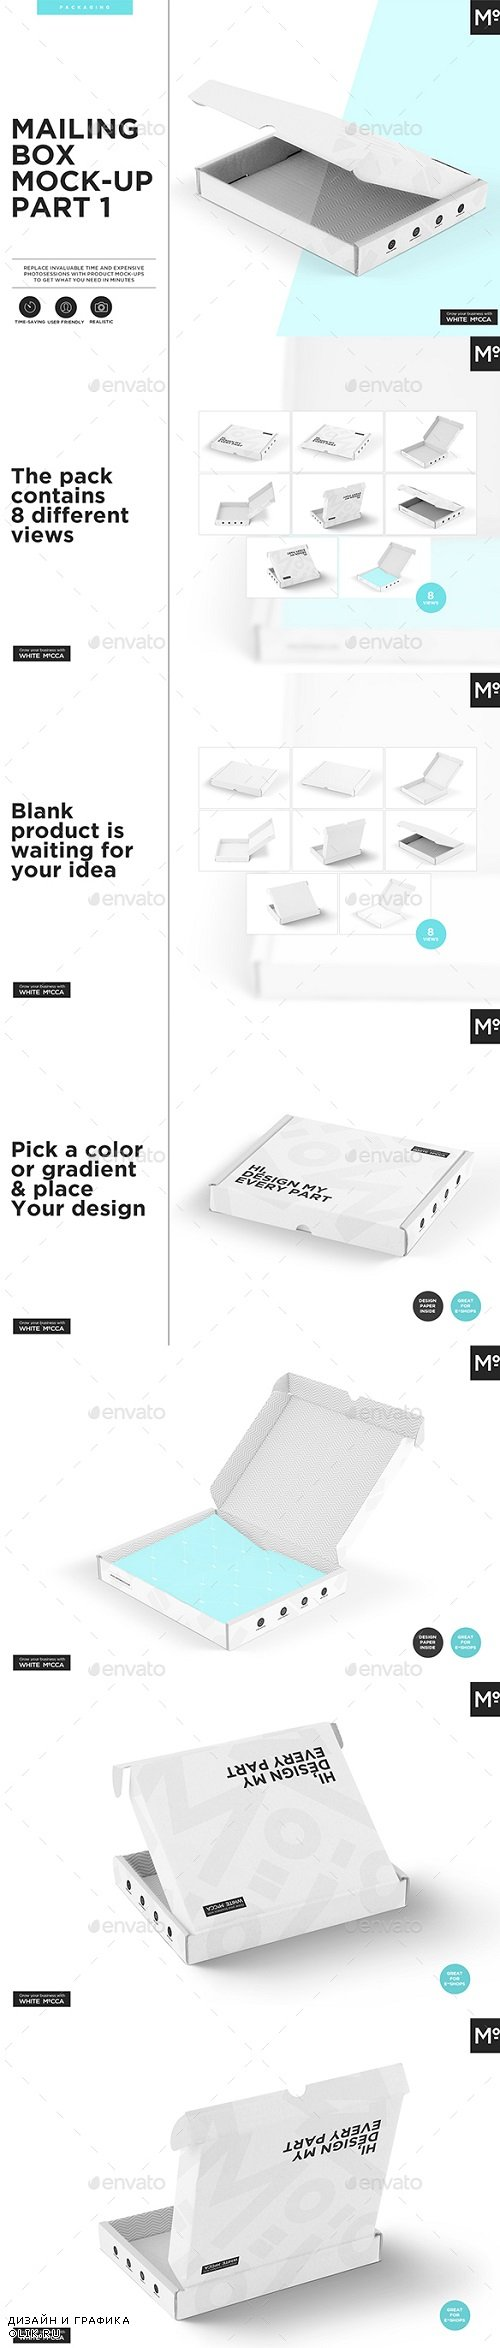 Mailing Boxes Mock-up Part 1 1543178